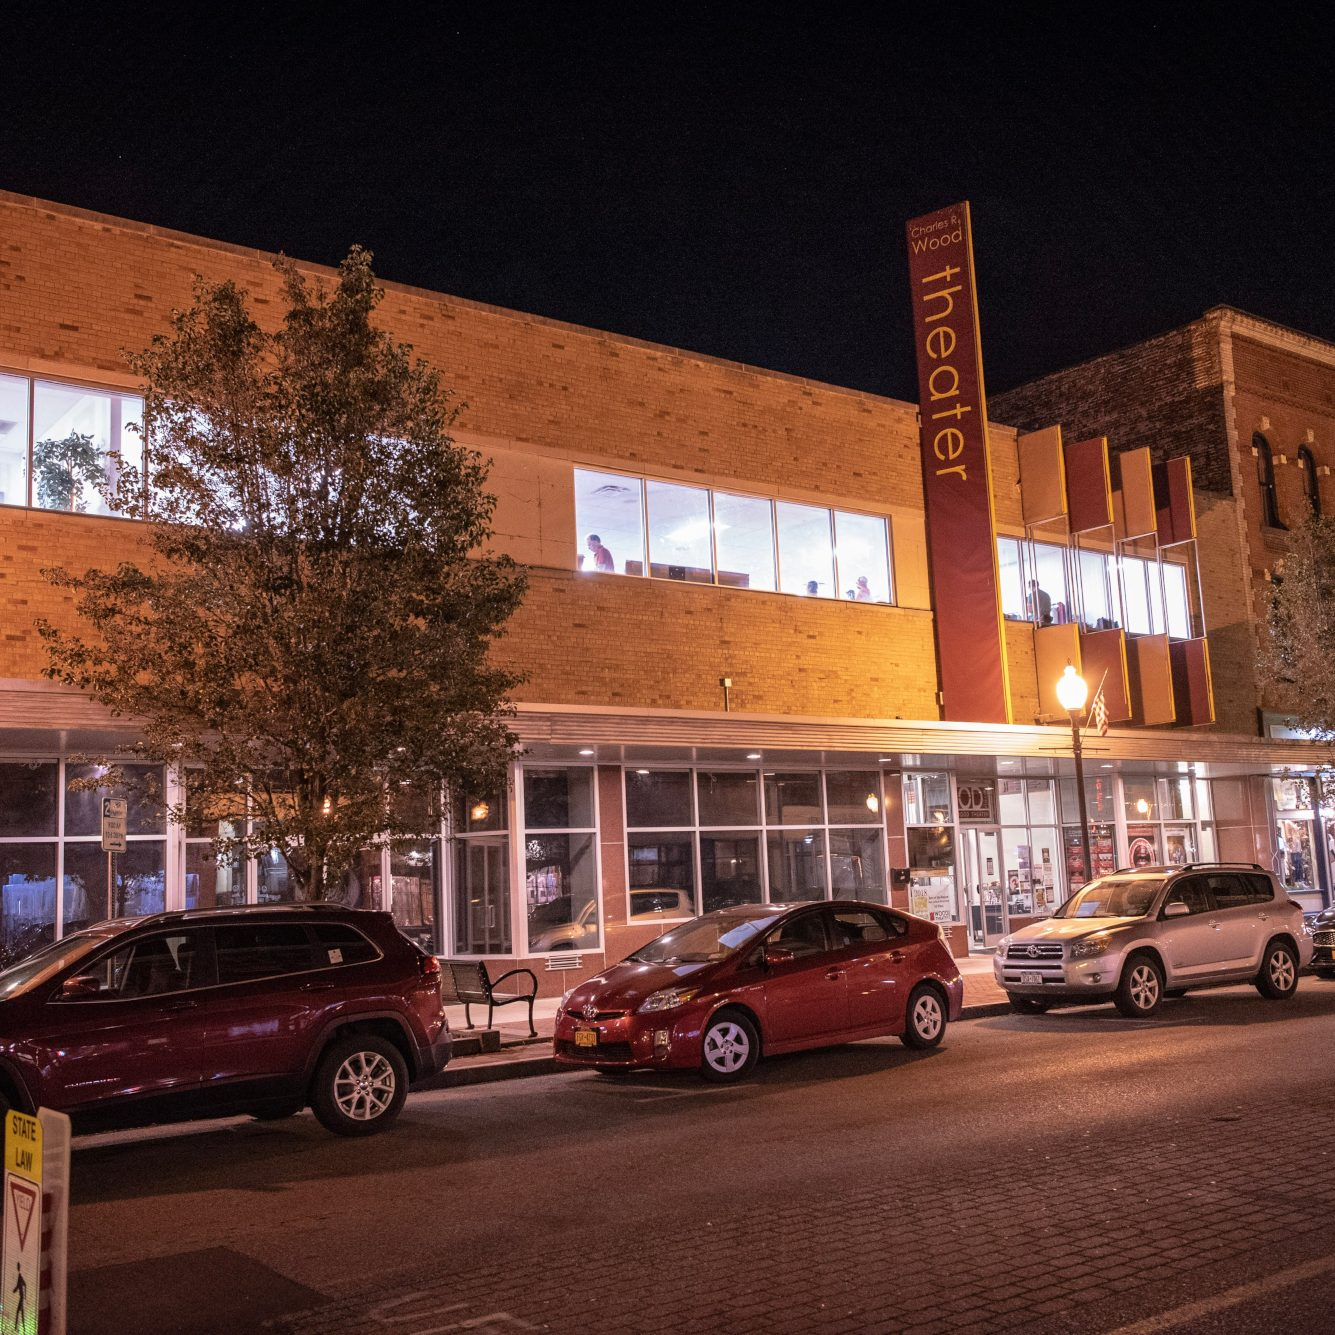 Exterior photo of the Wood Theater in Downtown Glens Falls